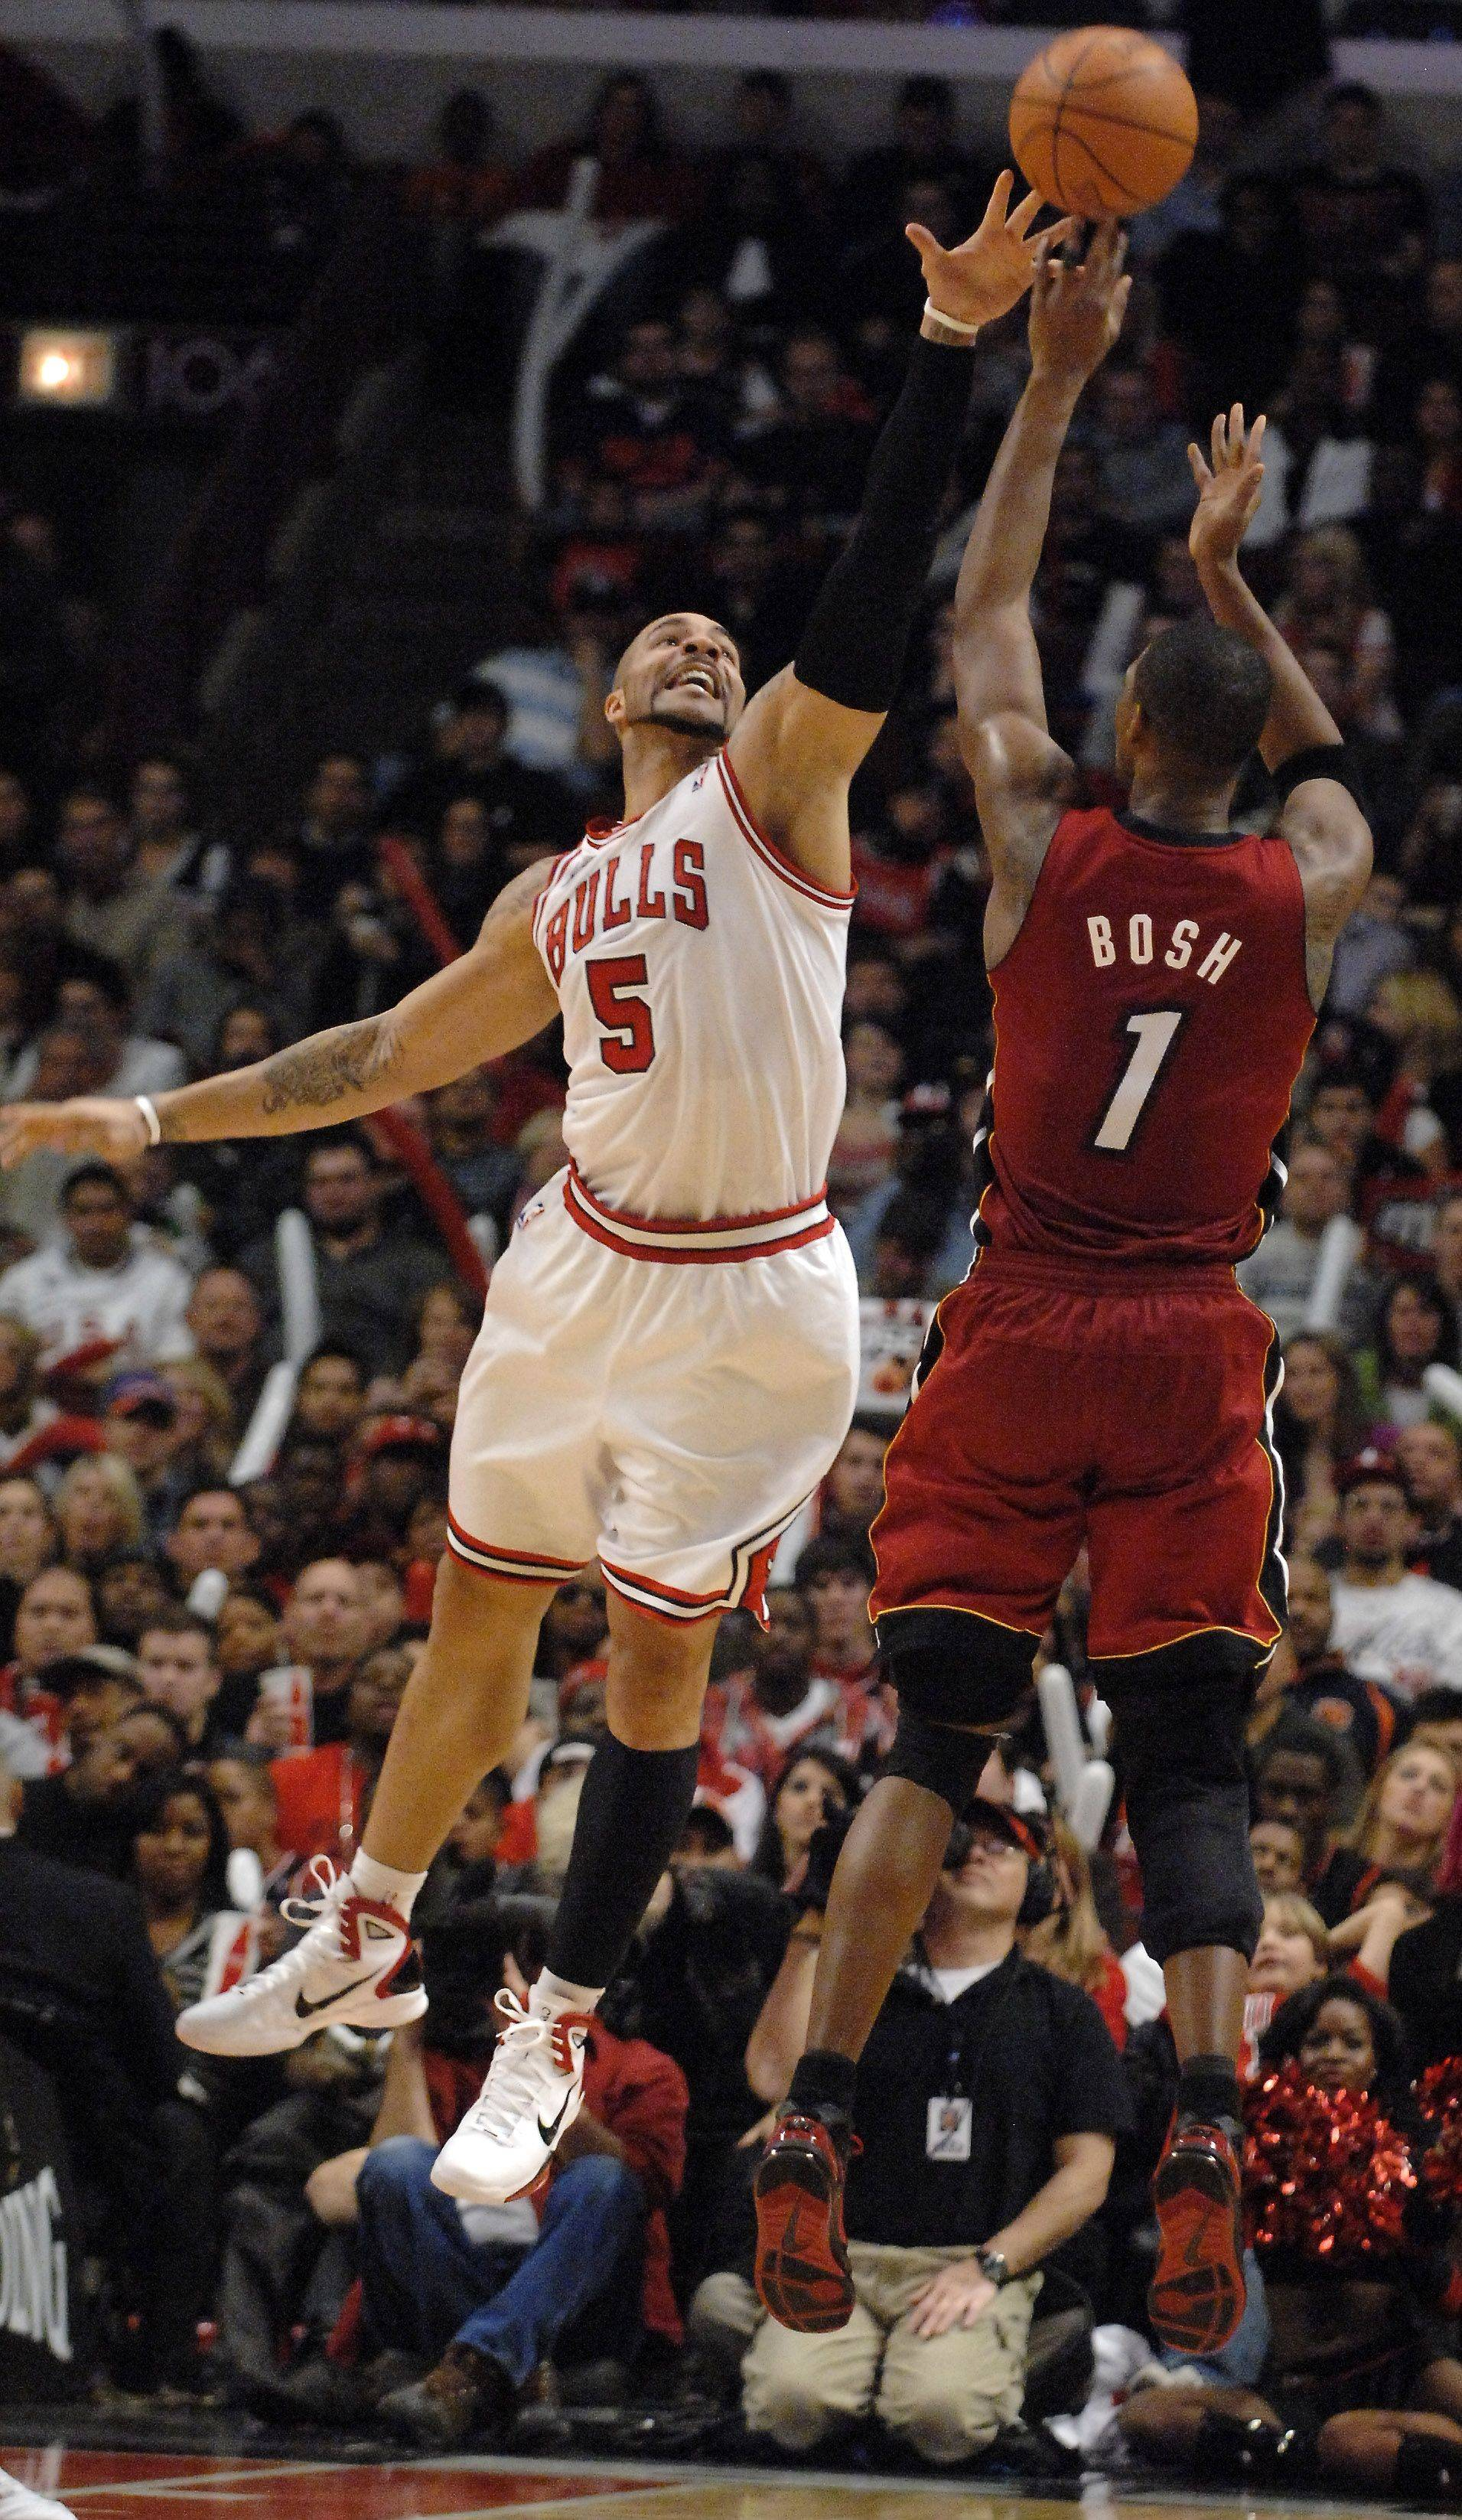 Miami Heat power forward Chris Bosh shoots over Chicago Bulls power forward Carlos Boozer during Saturday's game at the United Center in Chicago.